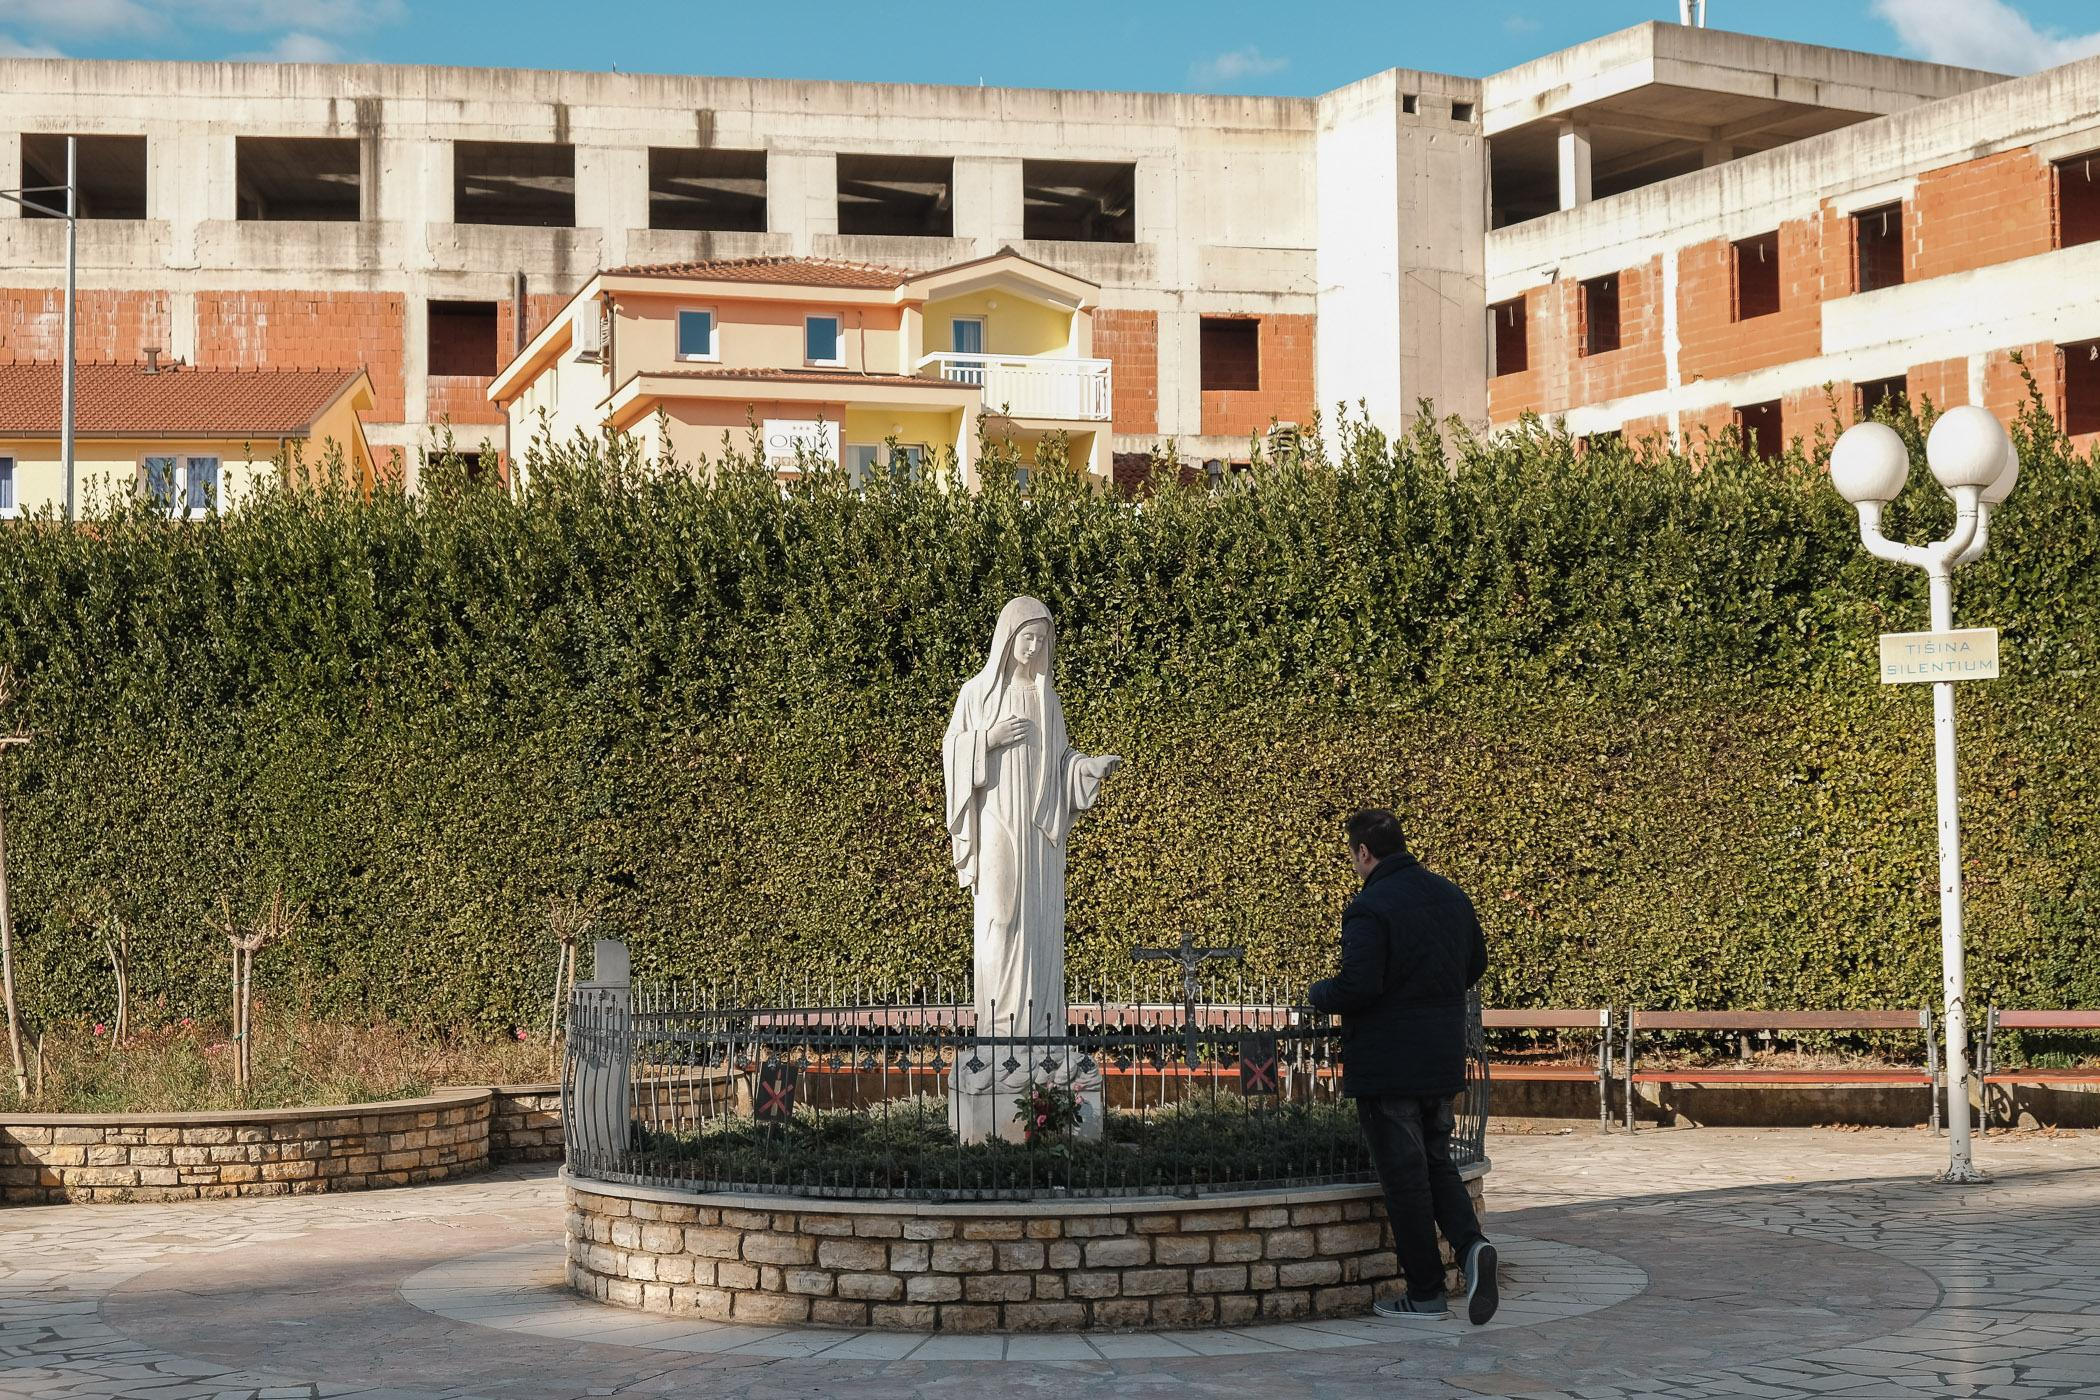 A statue of the Virgin Mary outside the Church of Saint James in Medjugorje, Bosnia and Herzegovina. The town has become a major Catholic pilgrimage site since 1981, when six local teenagers reported being visited by an apparition of the Virgin while walking on a hill overlooking the town.